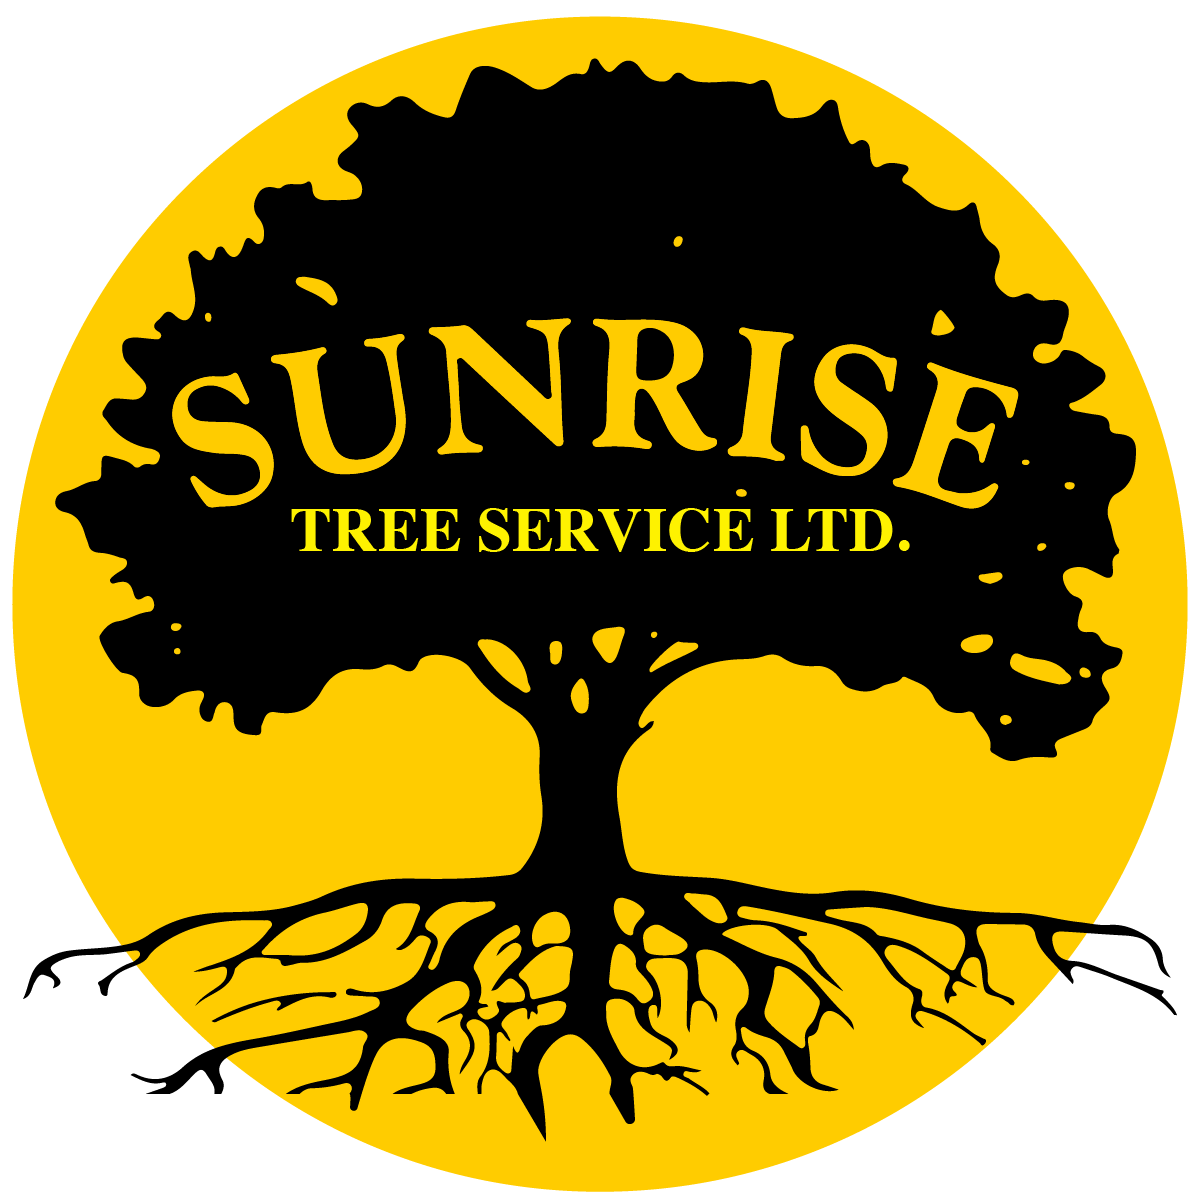 Sunrise_logo_main